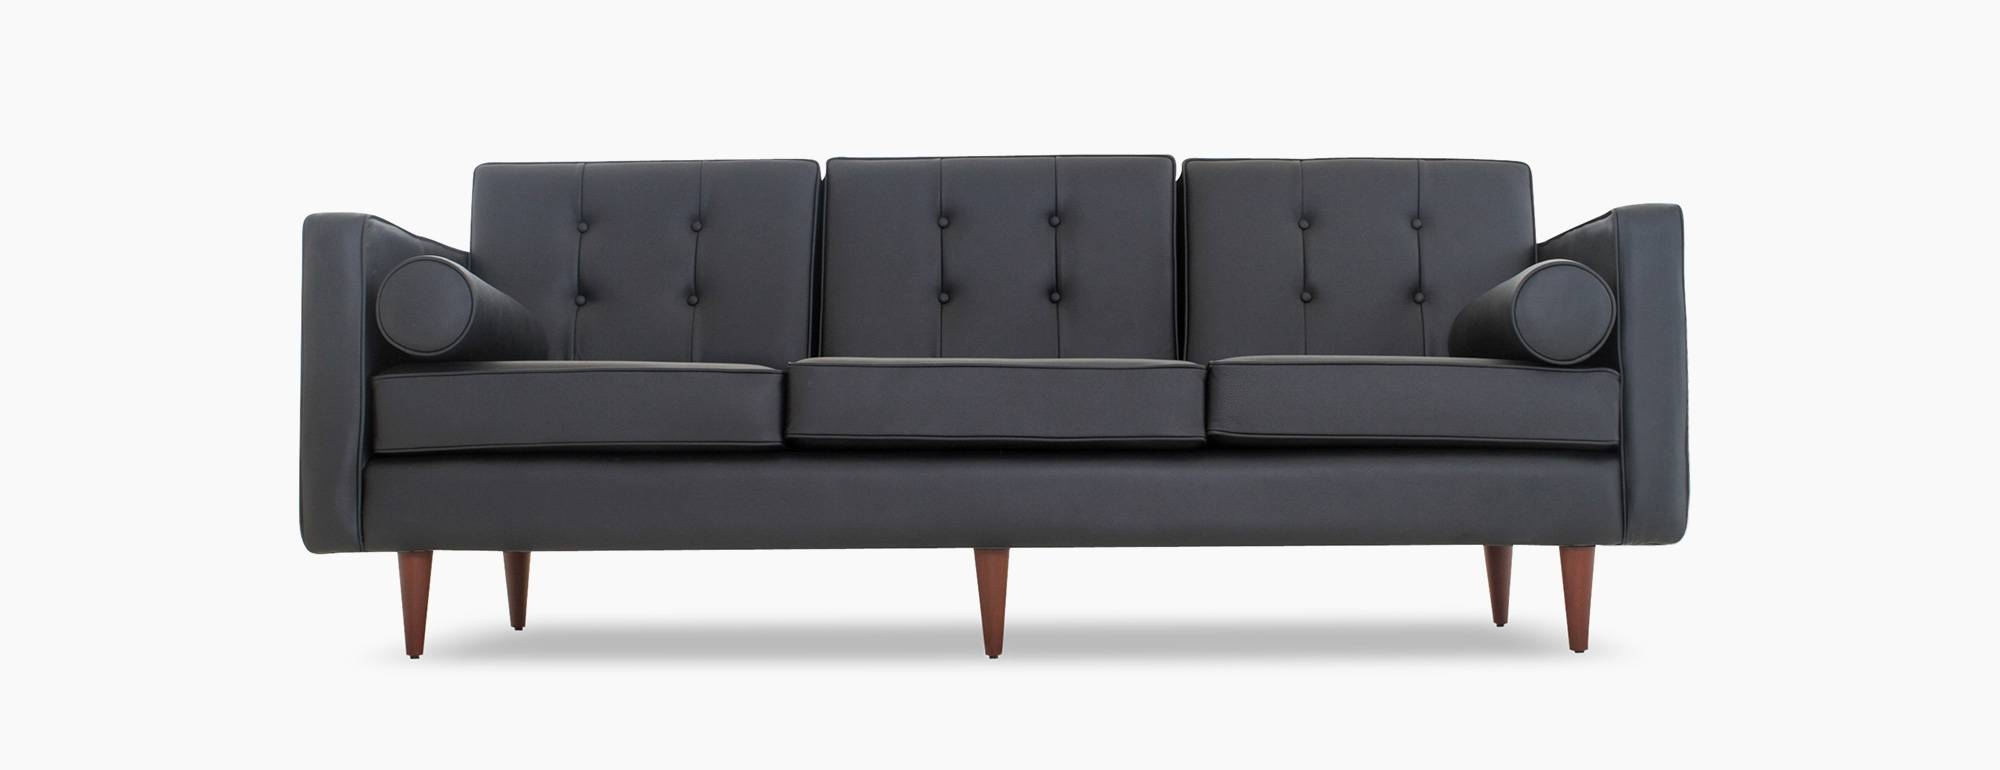 Braxton Leather Sofa | Joybird inside Braxton Sofas (Image 5 of 15)